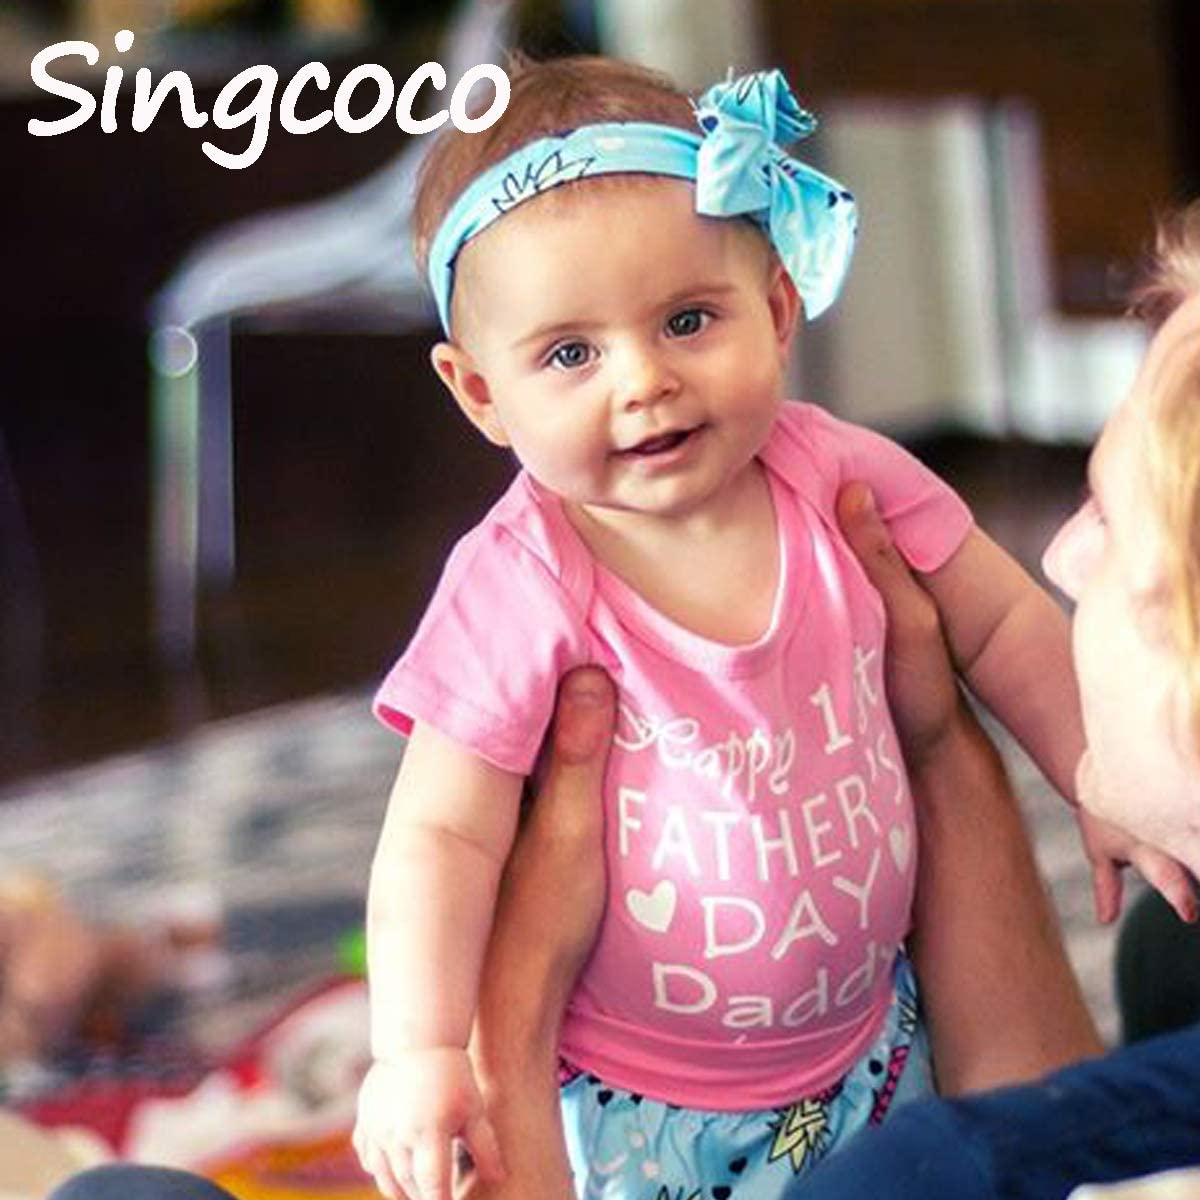 Singcoco 3PCS Short Set Baby Girls Happy First Fathers Day Romper